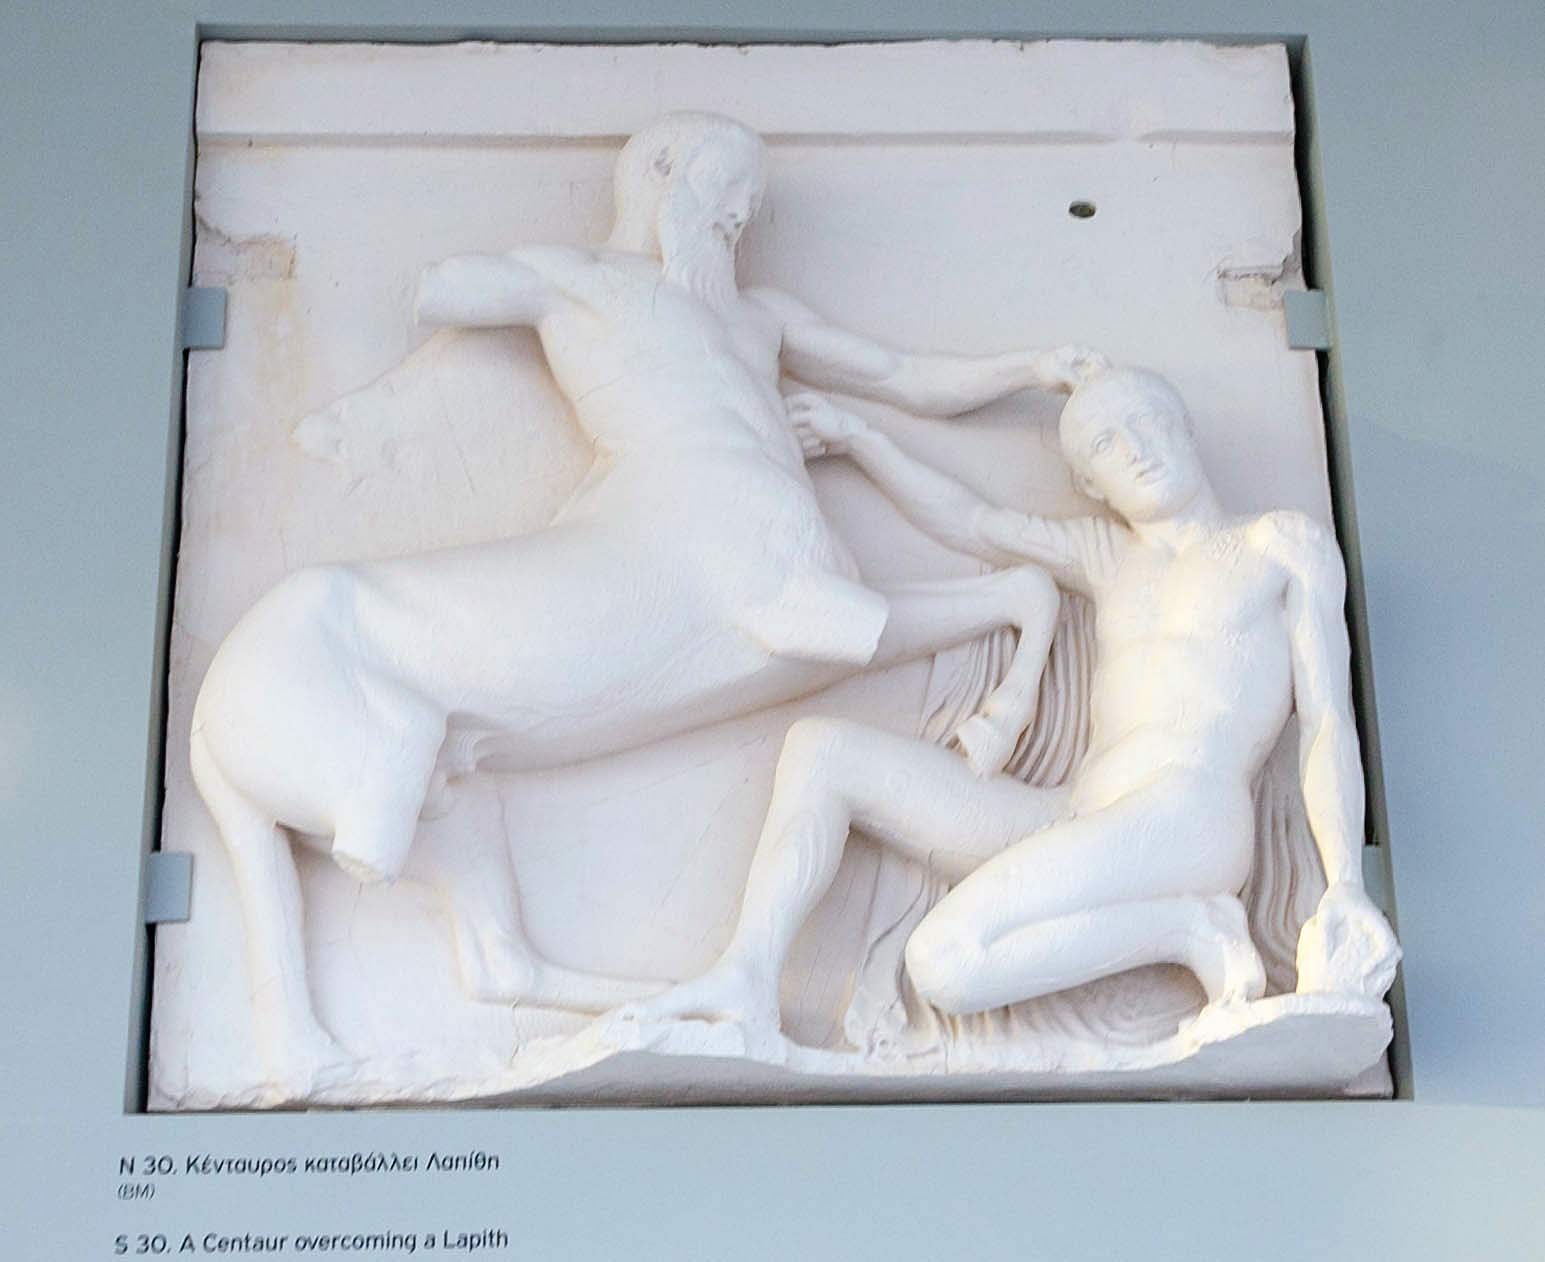 'A Centaur overcoming a Lapith' at Athens museum